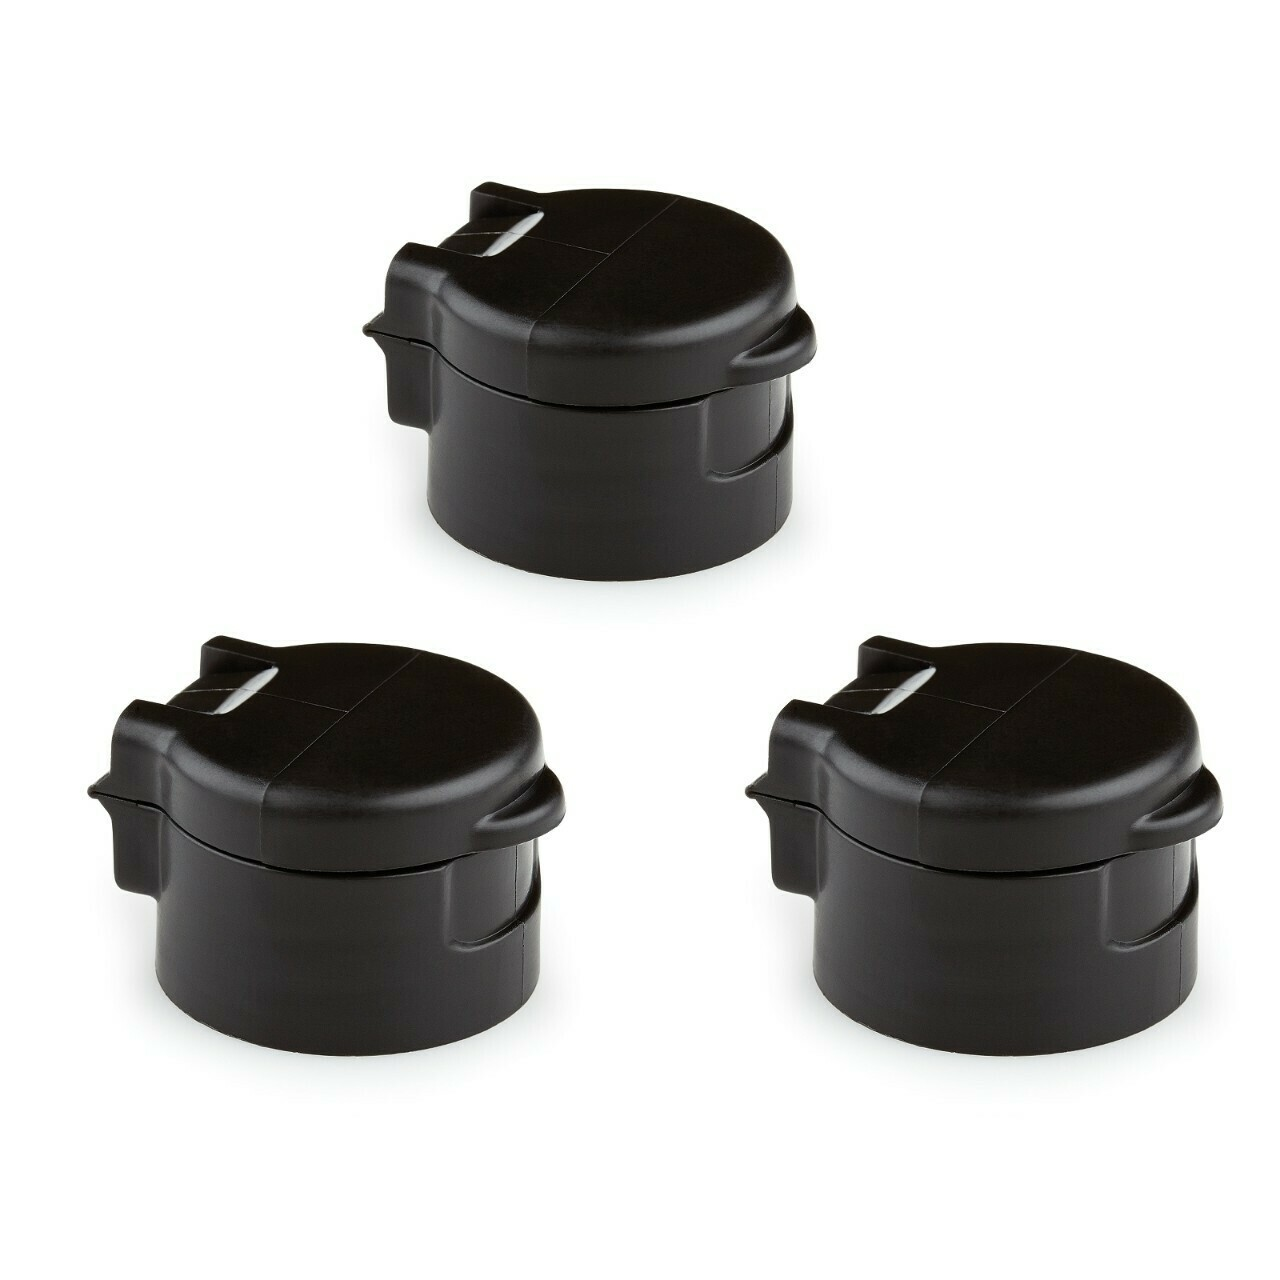 Graco VacuValve Cap Replacements, 3 pack